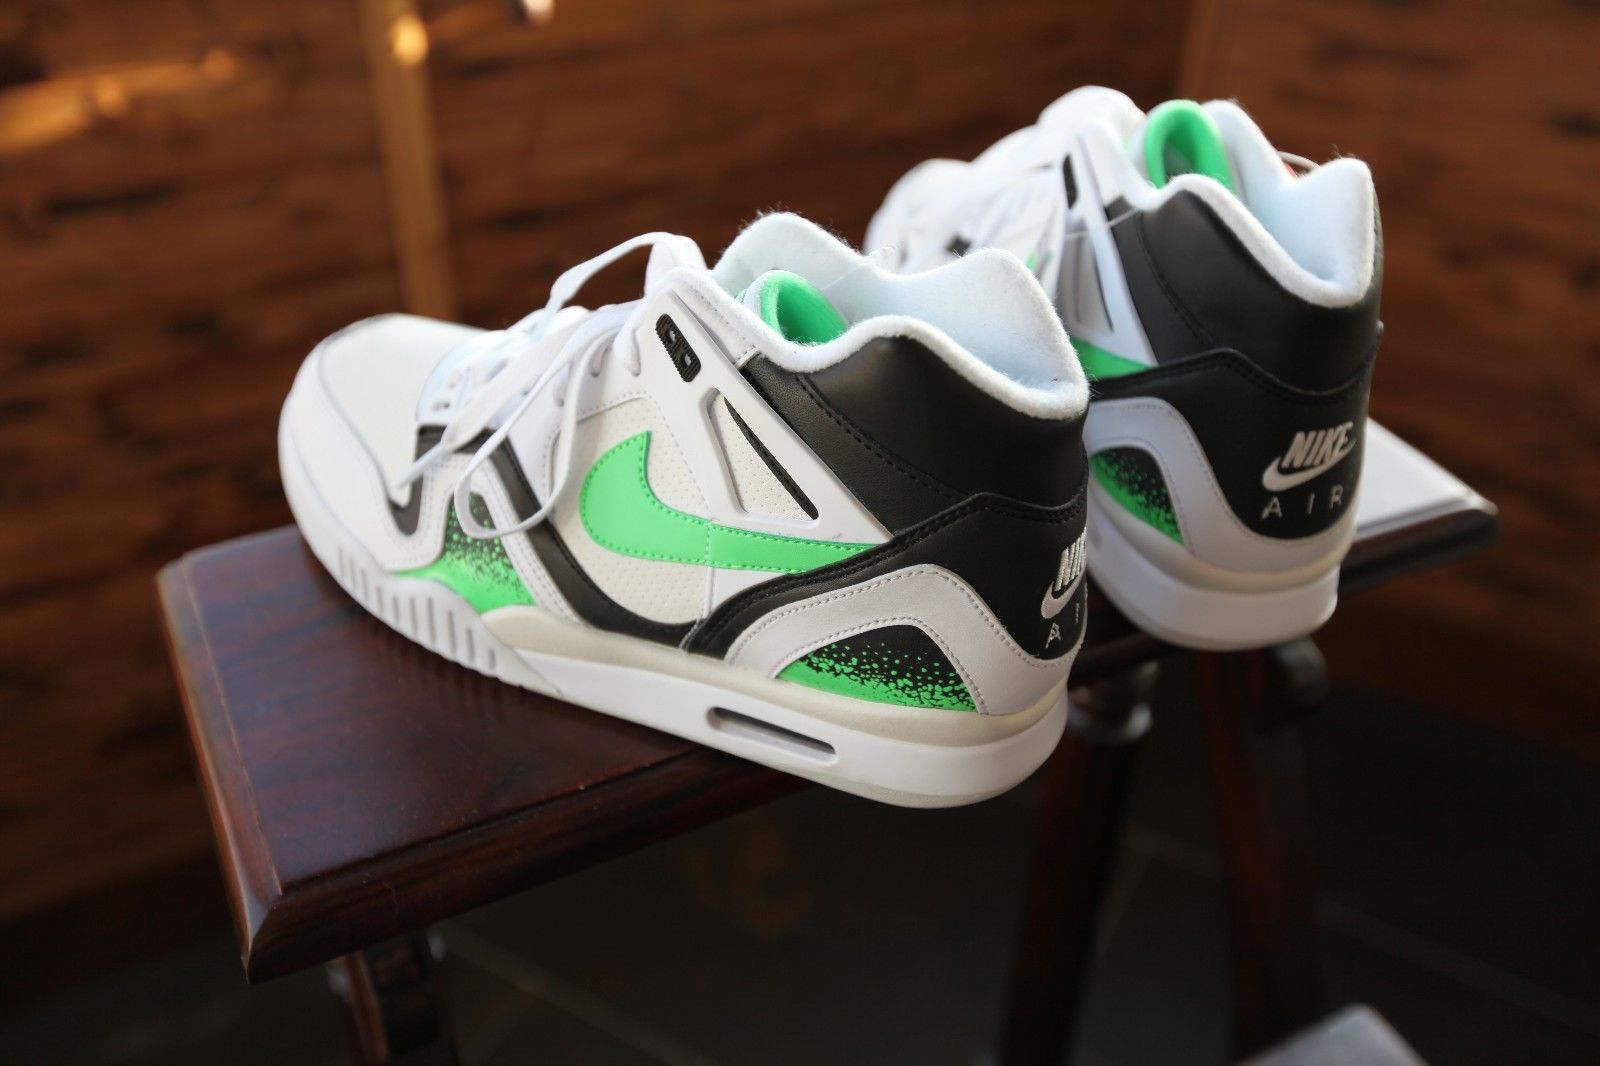 769a61624 Nike Air Tech Challenge II - Poison Green